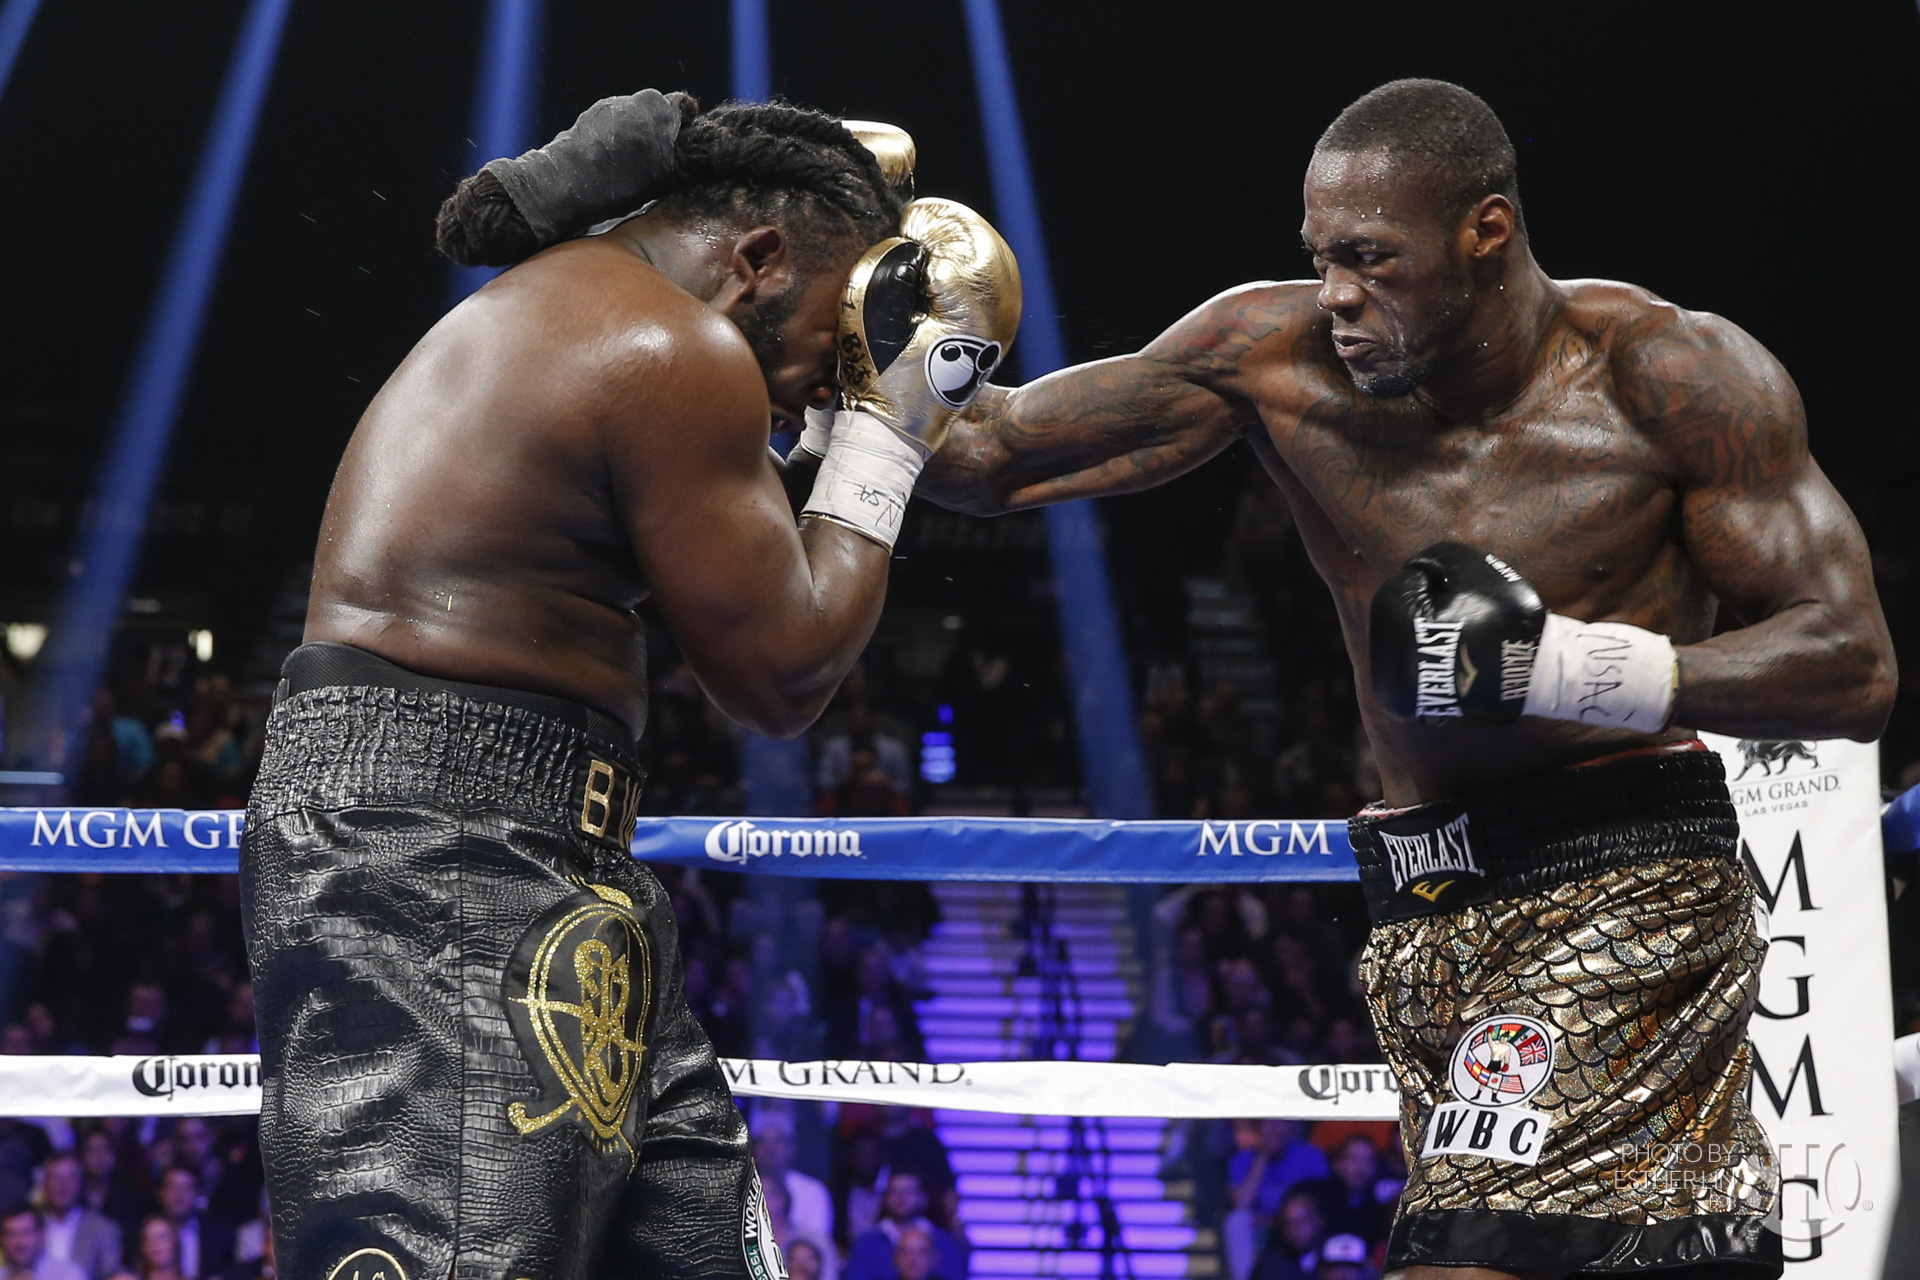 Deontay Wilder Brings The Heavyweight Championship Back To